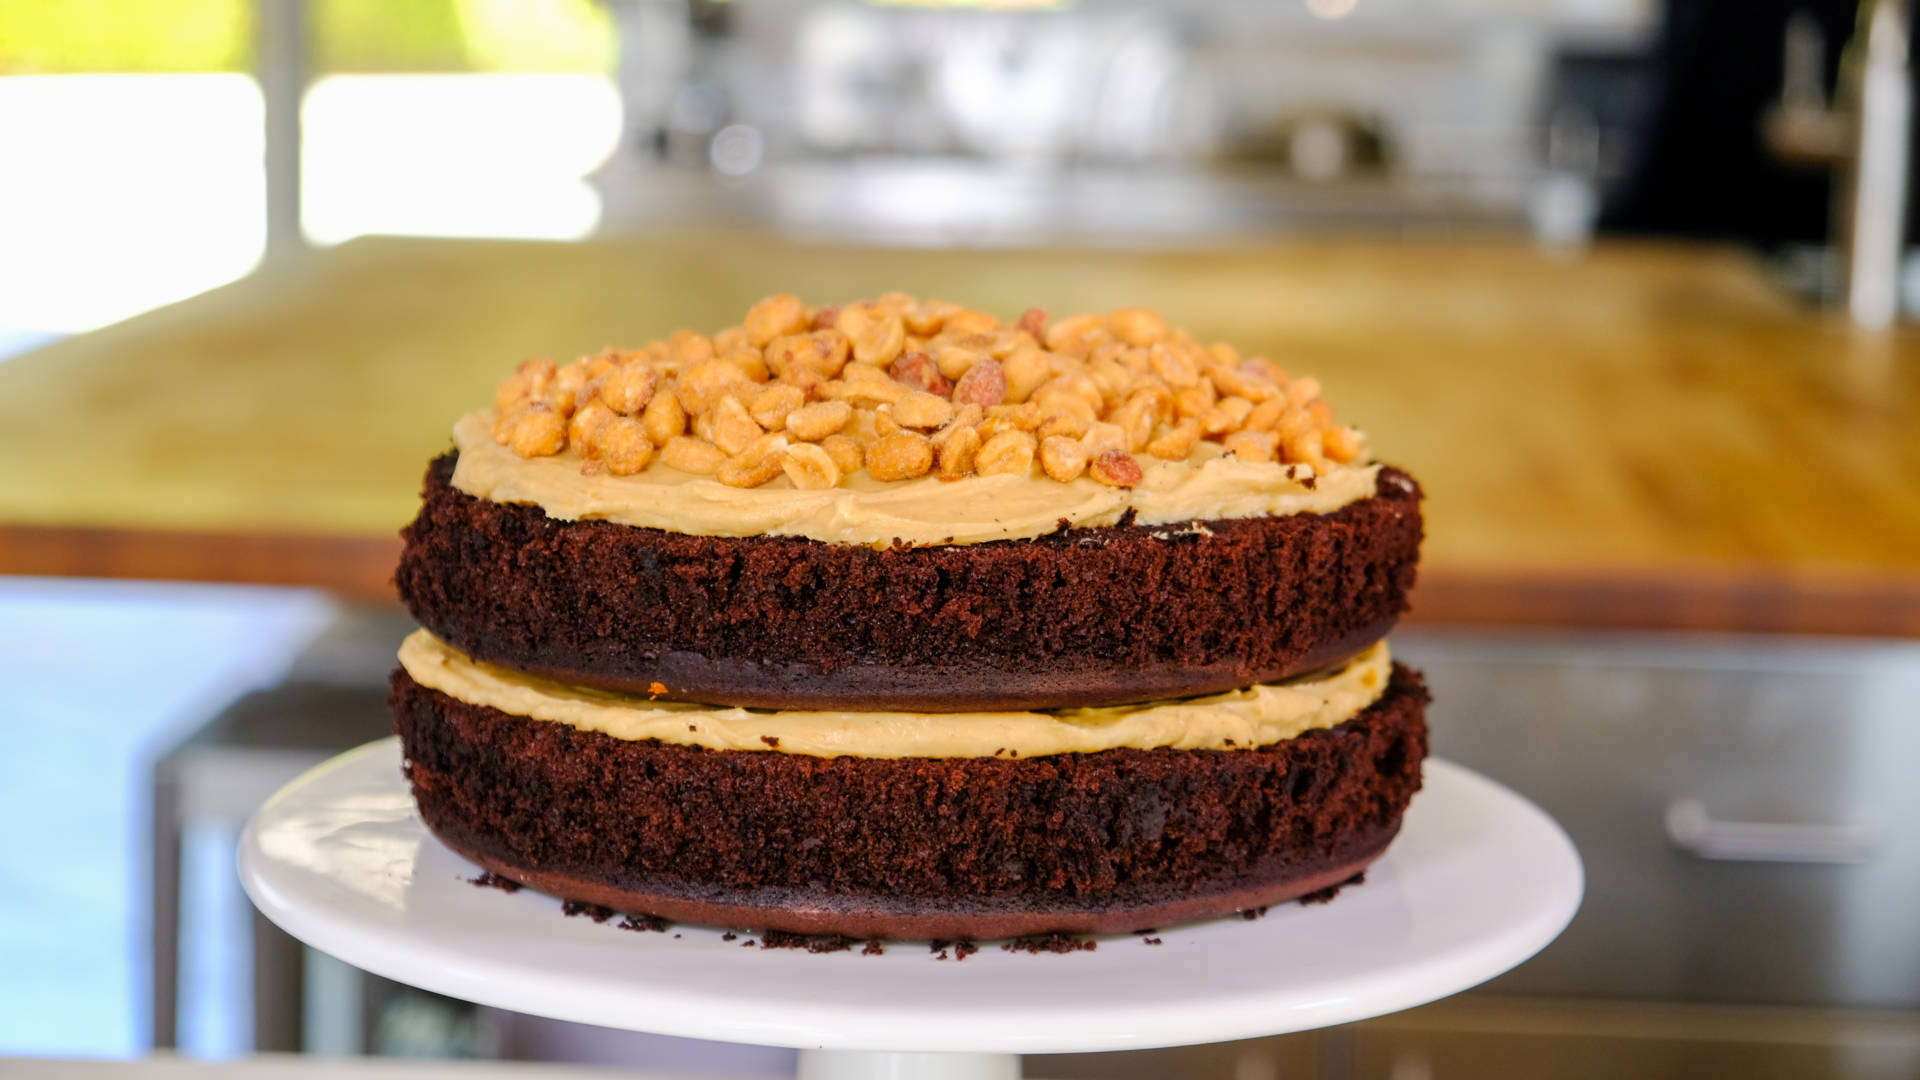 Emily Luchetti's classic chocolate layer cake with peanut butter frosting.